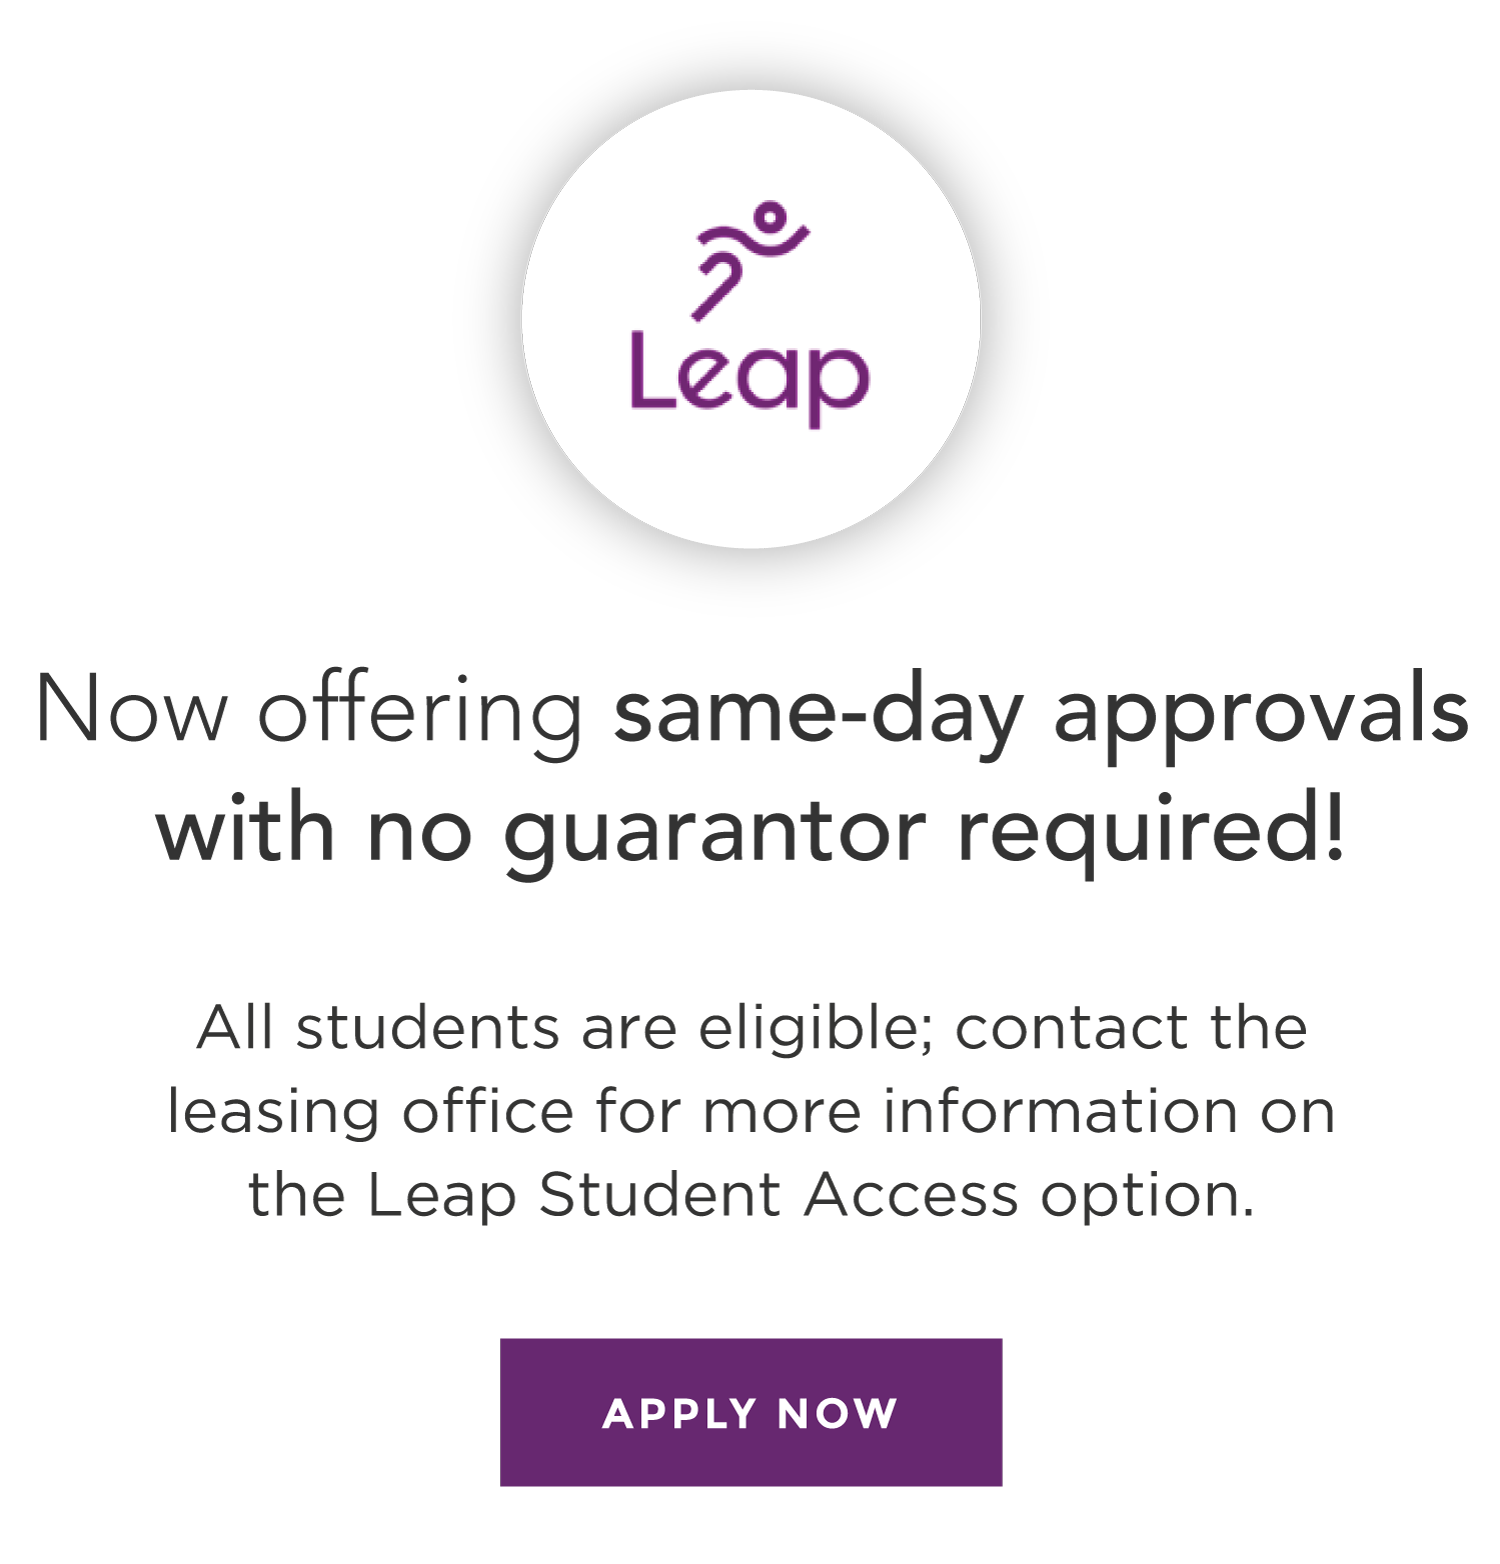 Leap Student Access Options